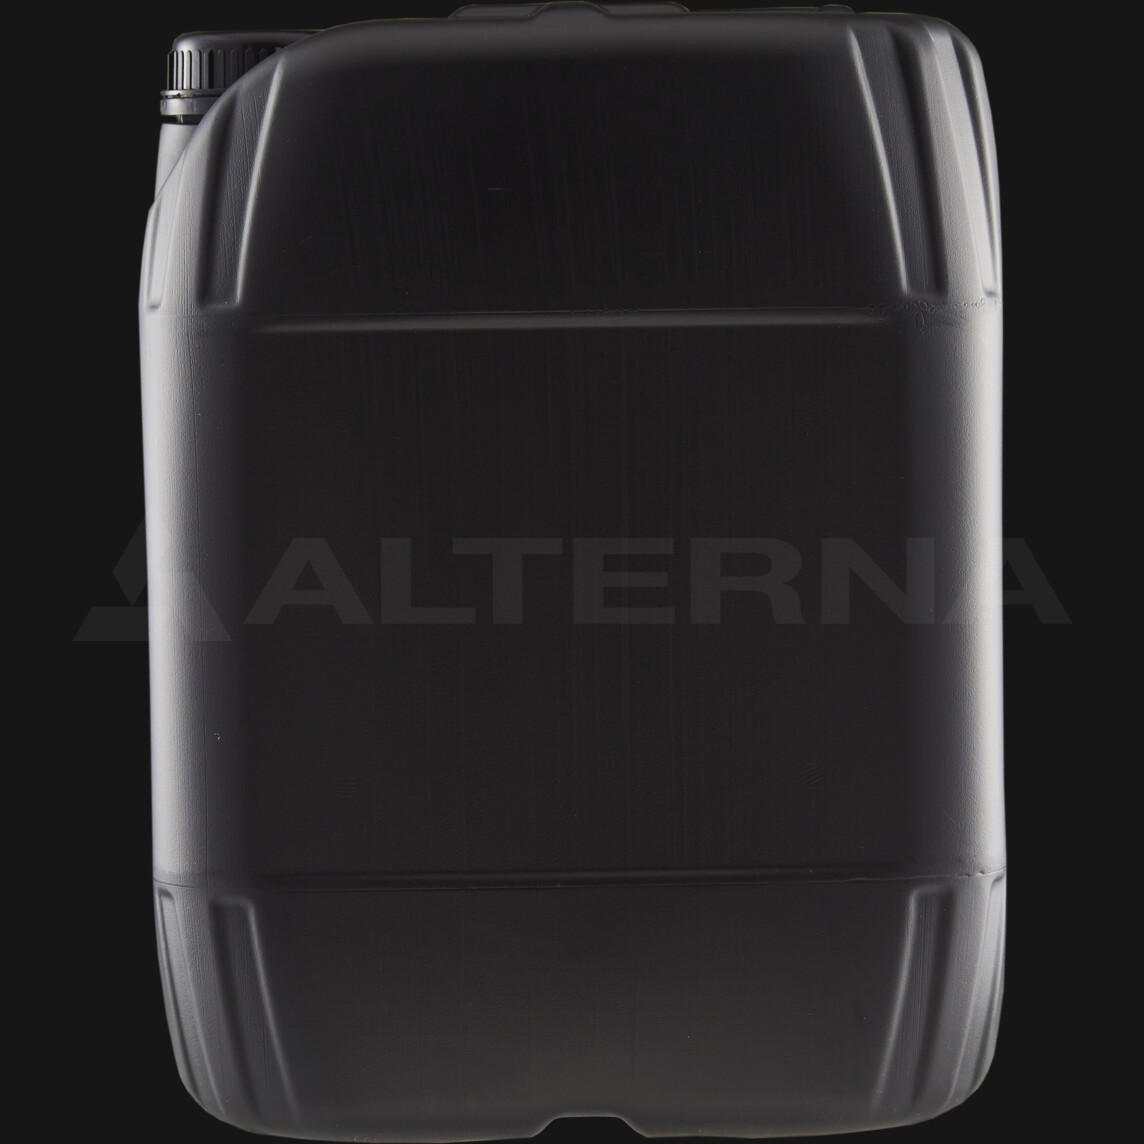 20 Liter HDPE Jerry Can with 60 mm Foam Seal Secure Cap